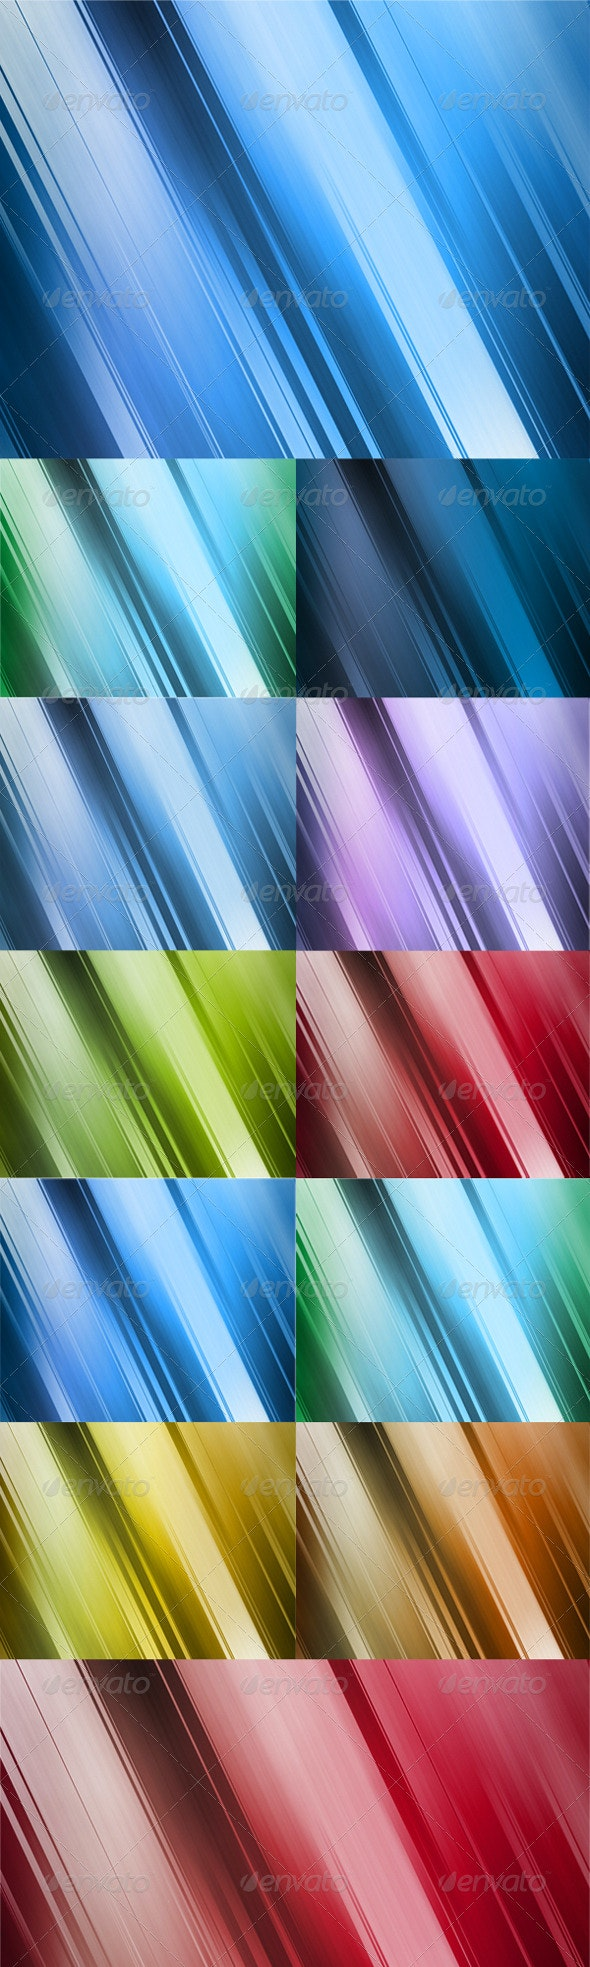 10 Abstract Backgrounds: 10 colors - Backgrounds Graphics